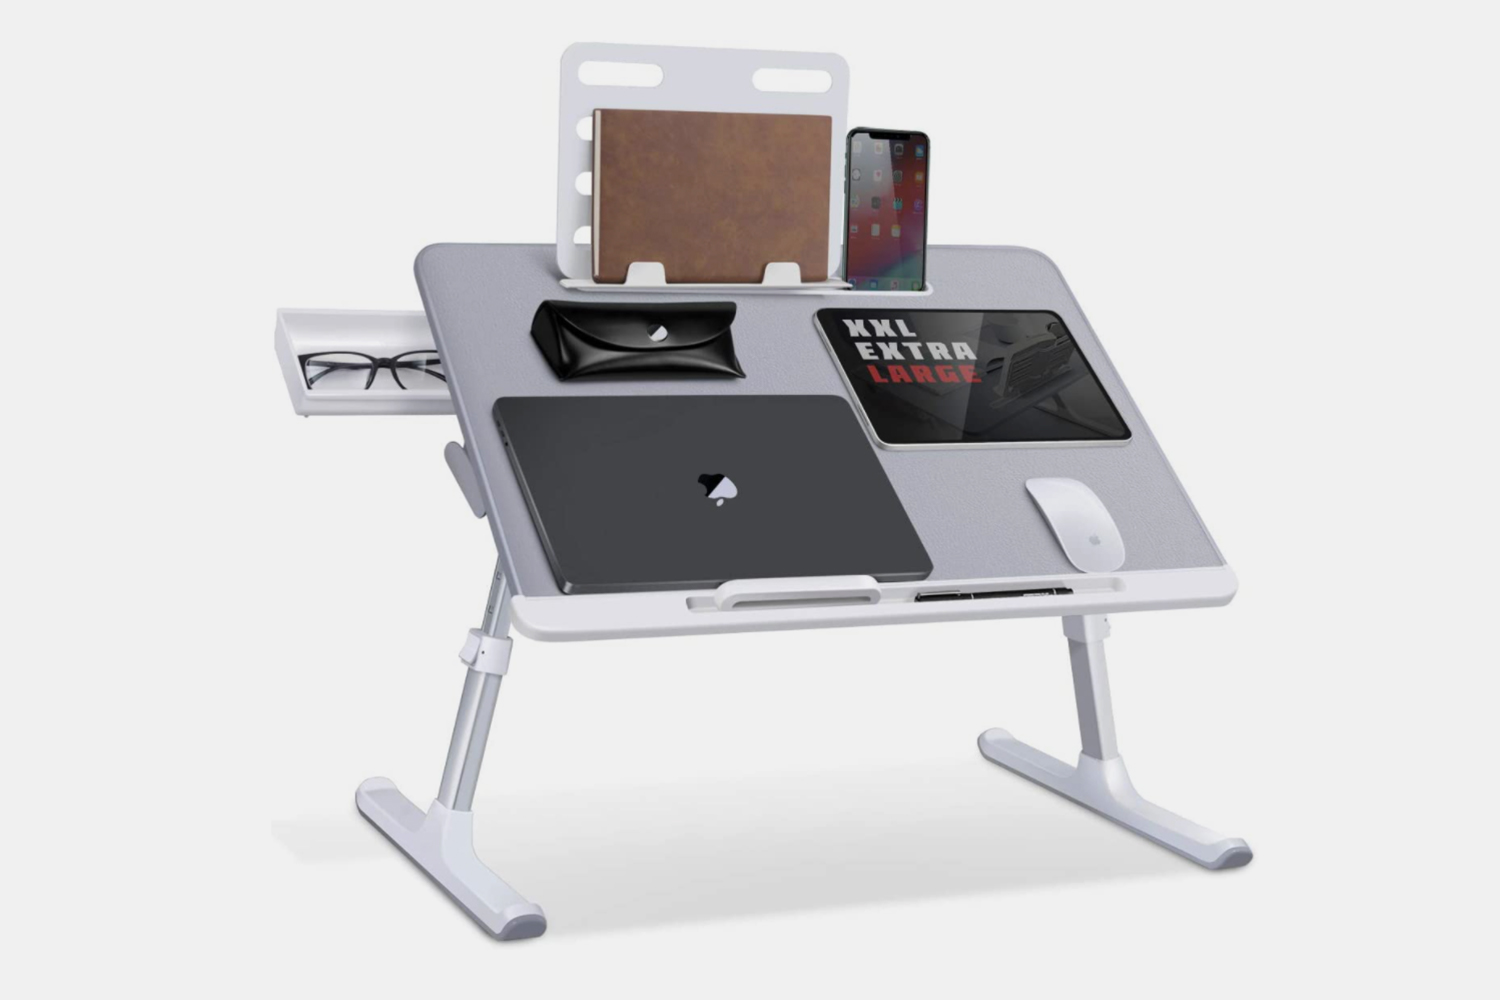 Laptop Bed Tray Desk, SAIJI Adjustable Laptop Stand for Bed, Foldable Laptop Table with Storage Drawer